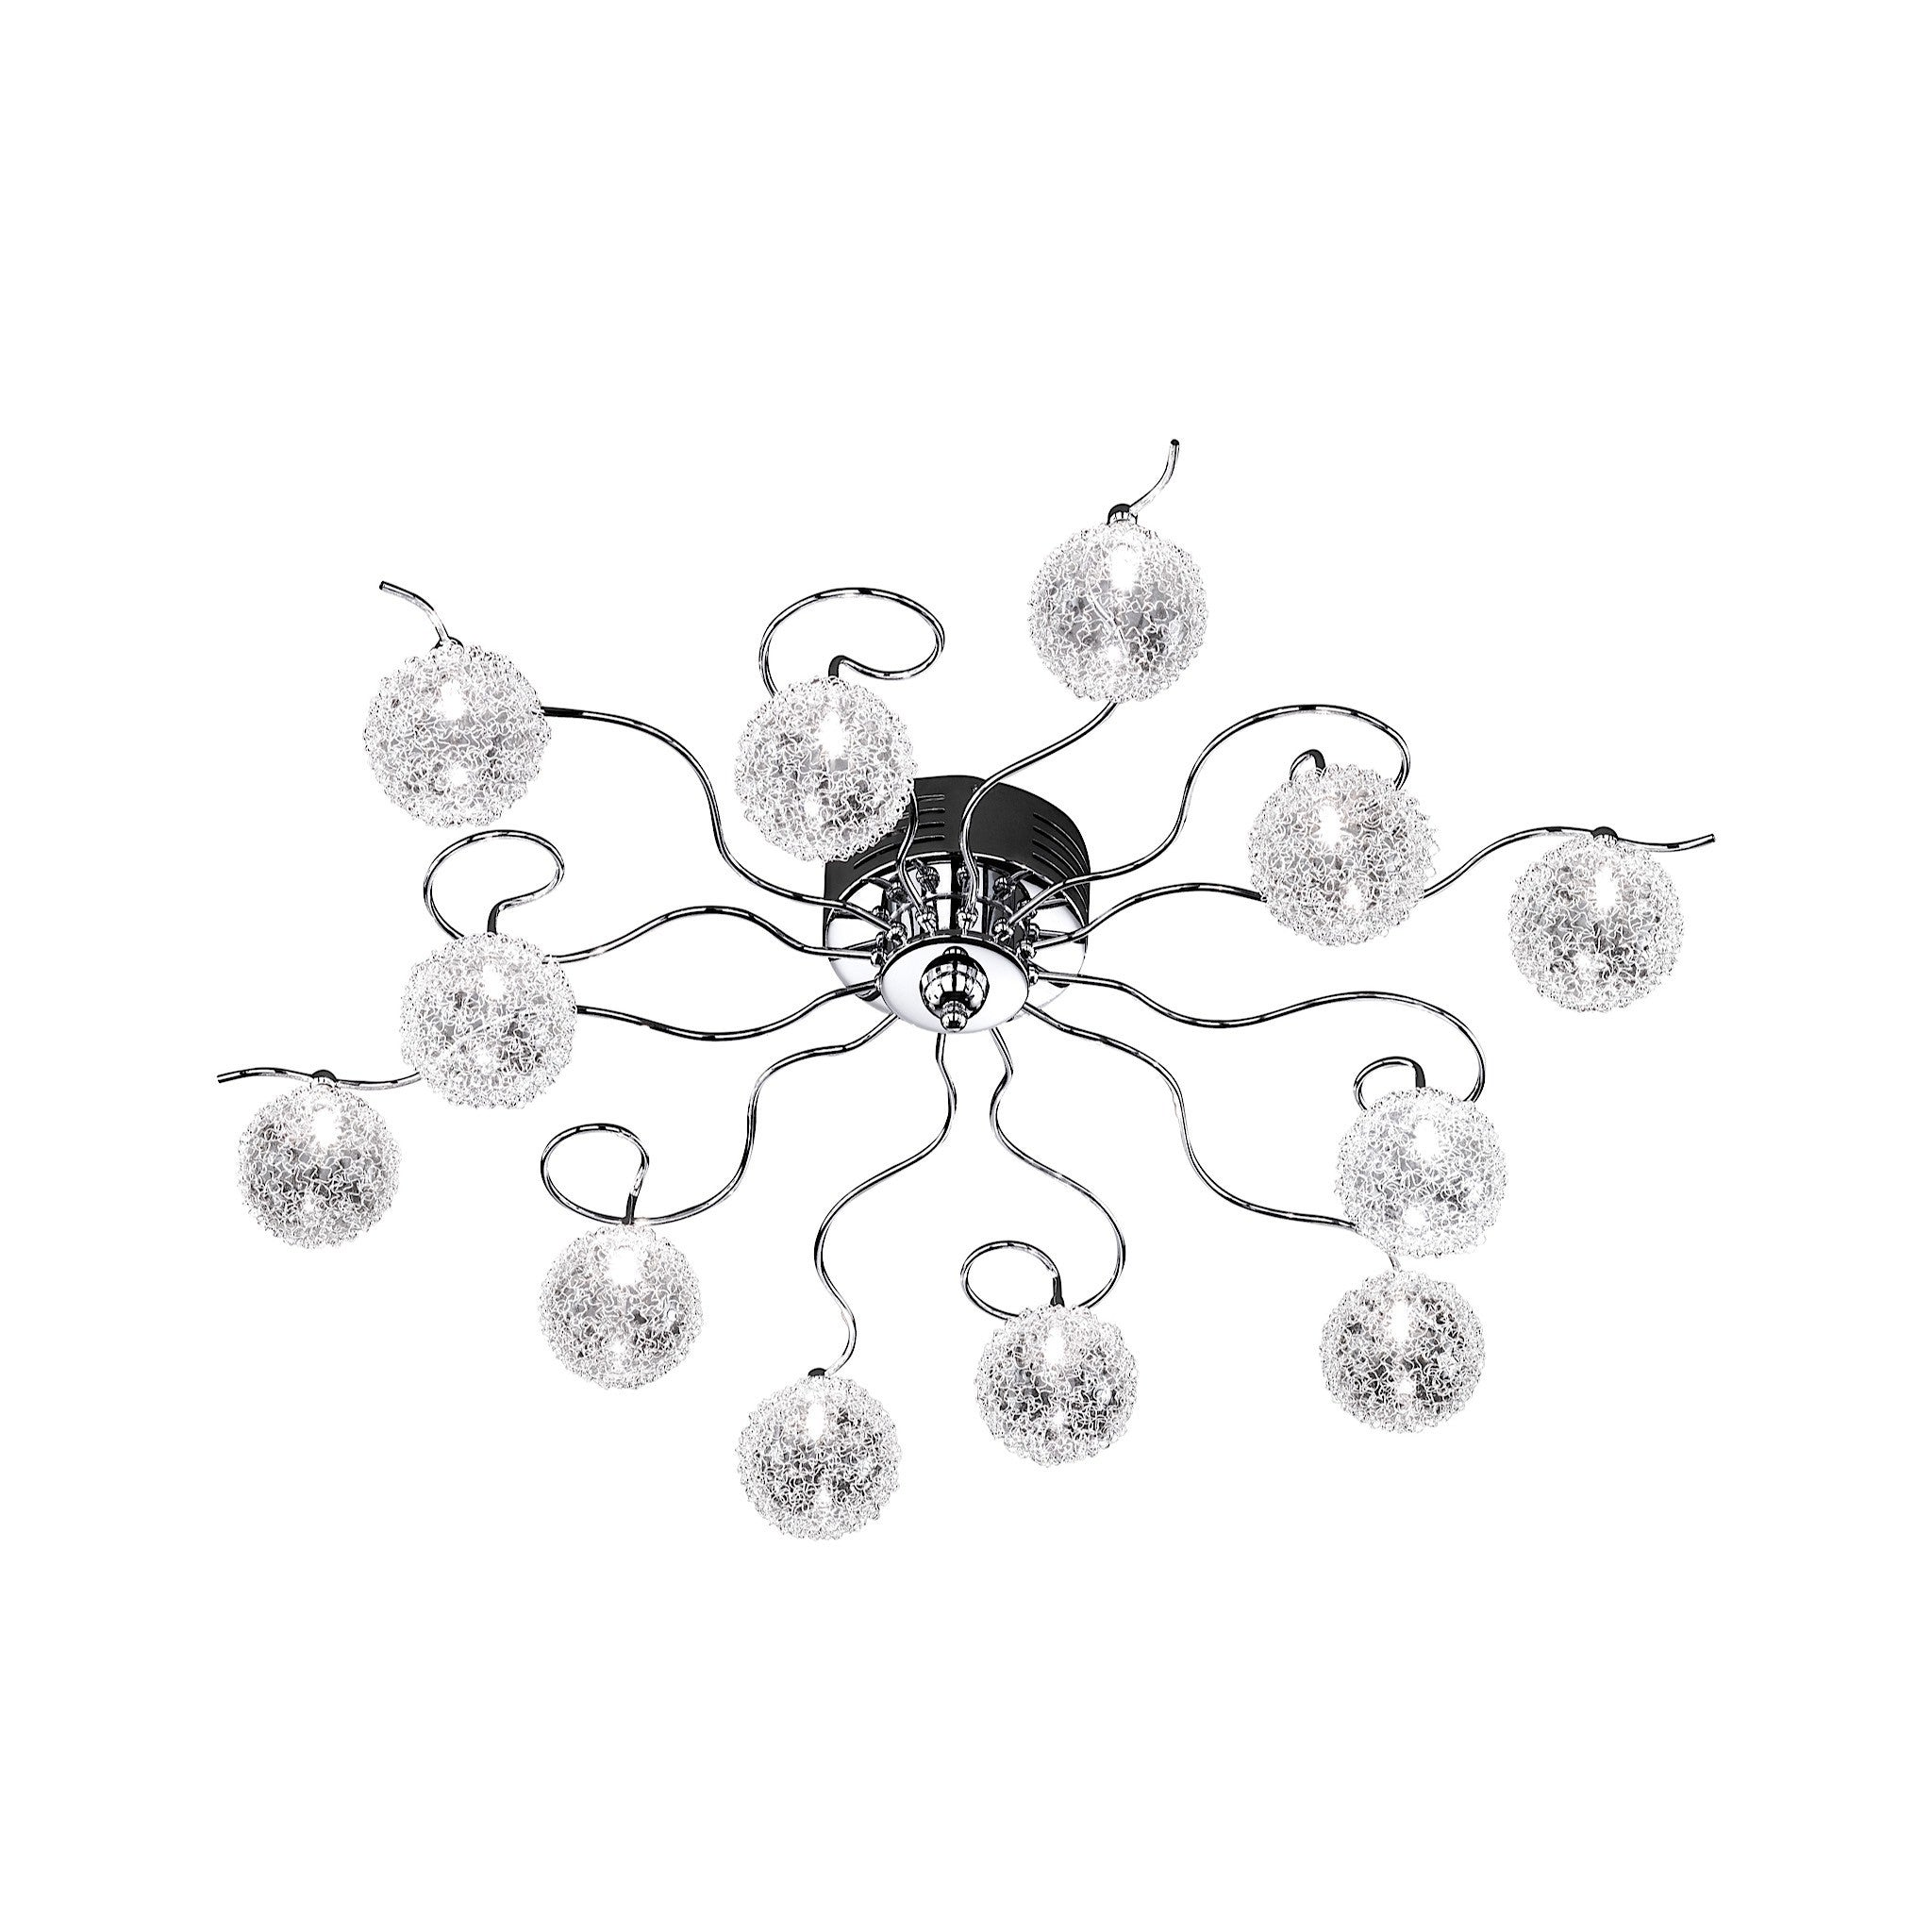 Wofi arc 12 light chrome ceiling light chandelier shack wofi arc 12 light chrome ceiling light 930612010000 aloadofball Choice Image